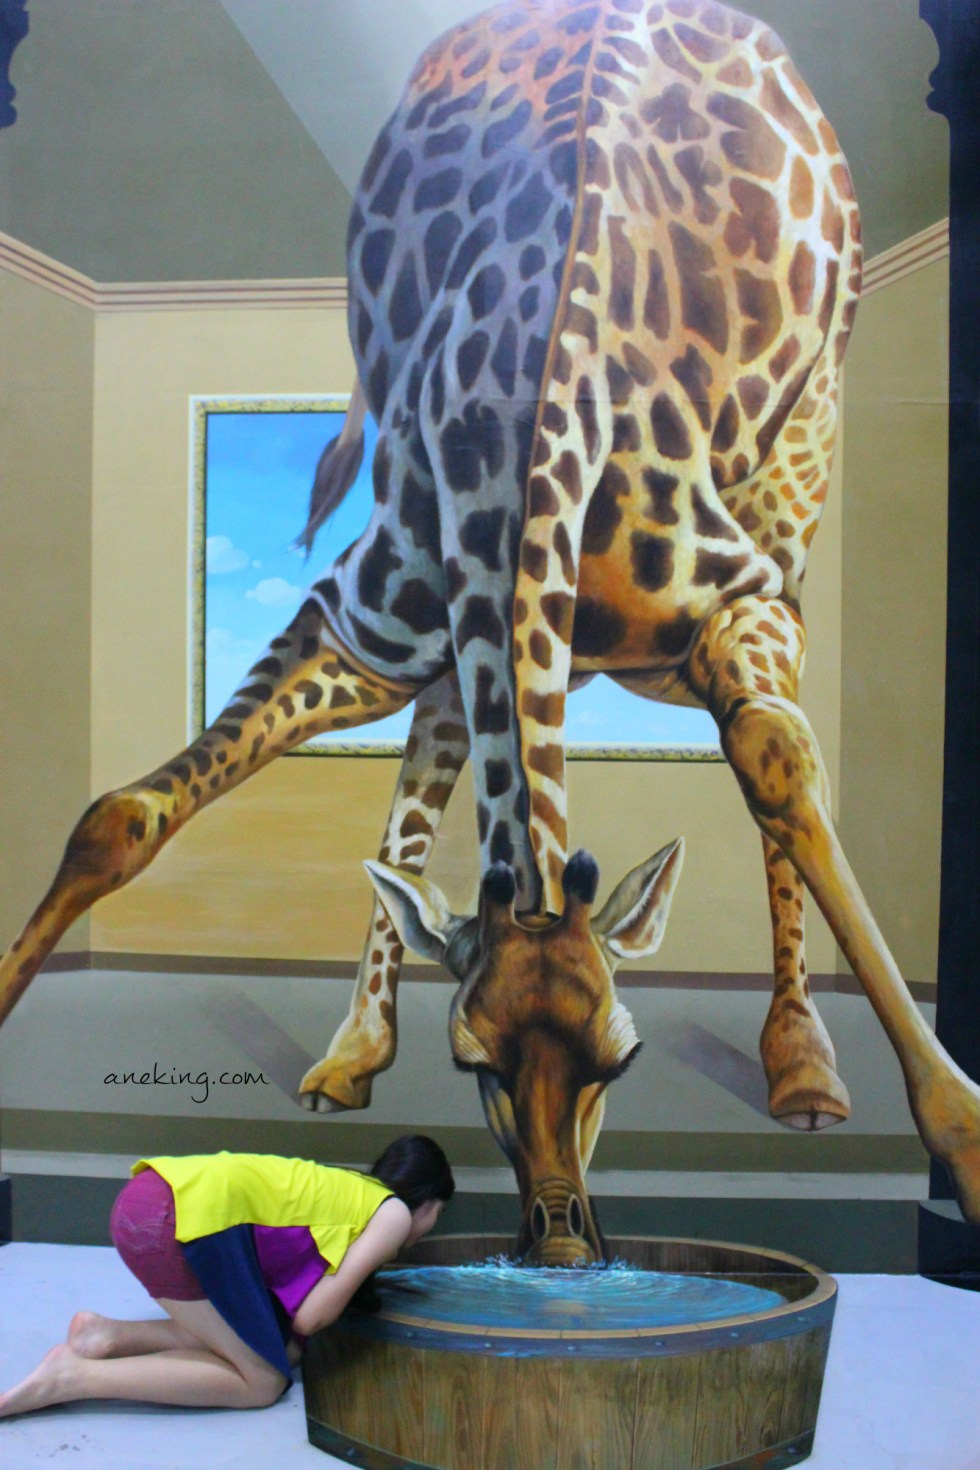 Giraffe in Art in Island